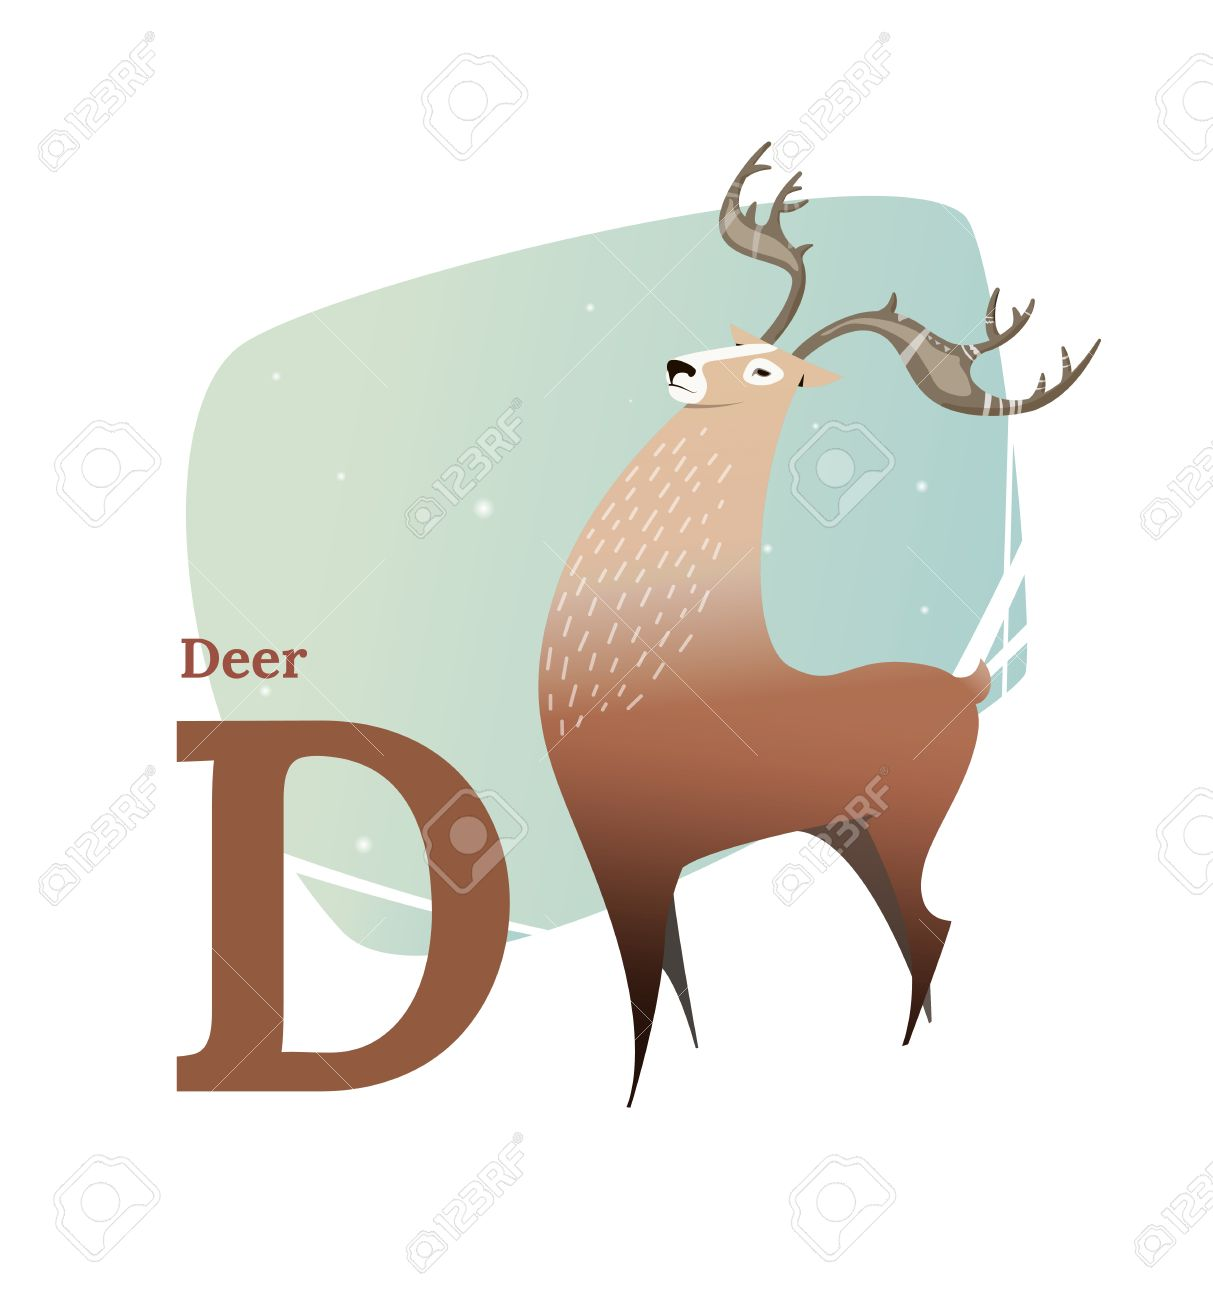 vector de alfabeto animal estilo plano brown deer de pie en la